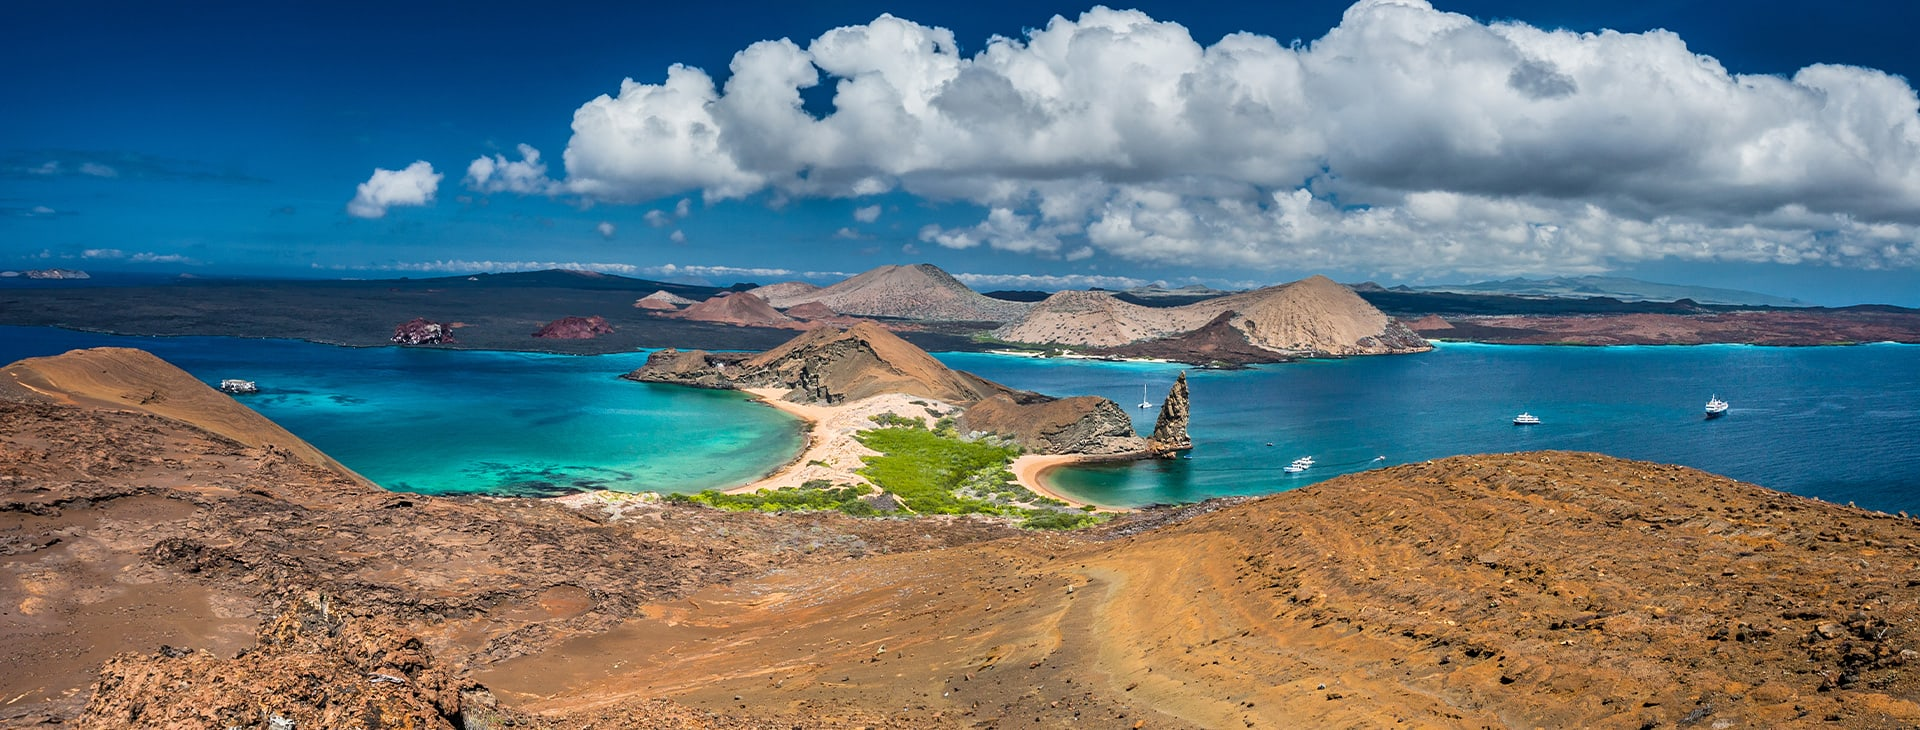 Galapagos Landscape with Pinnacle Rock